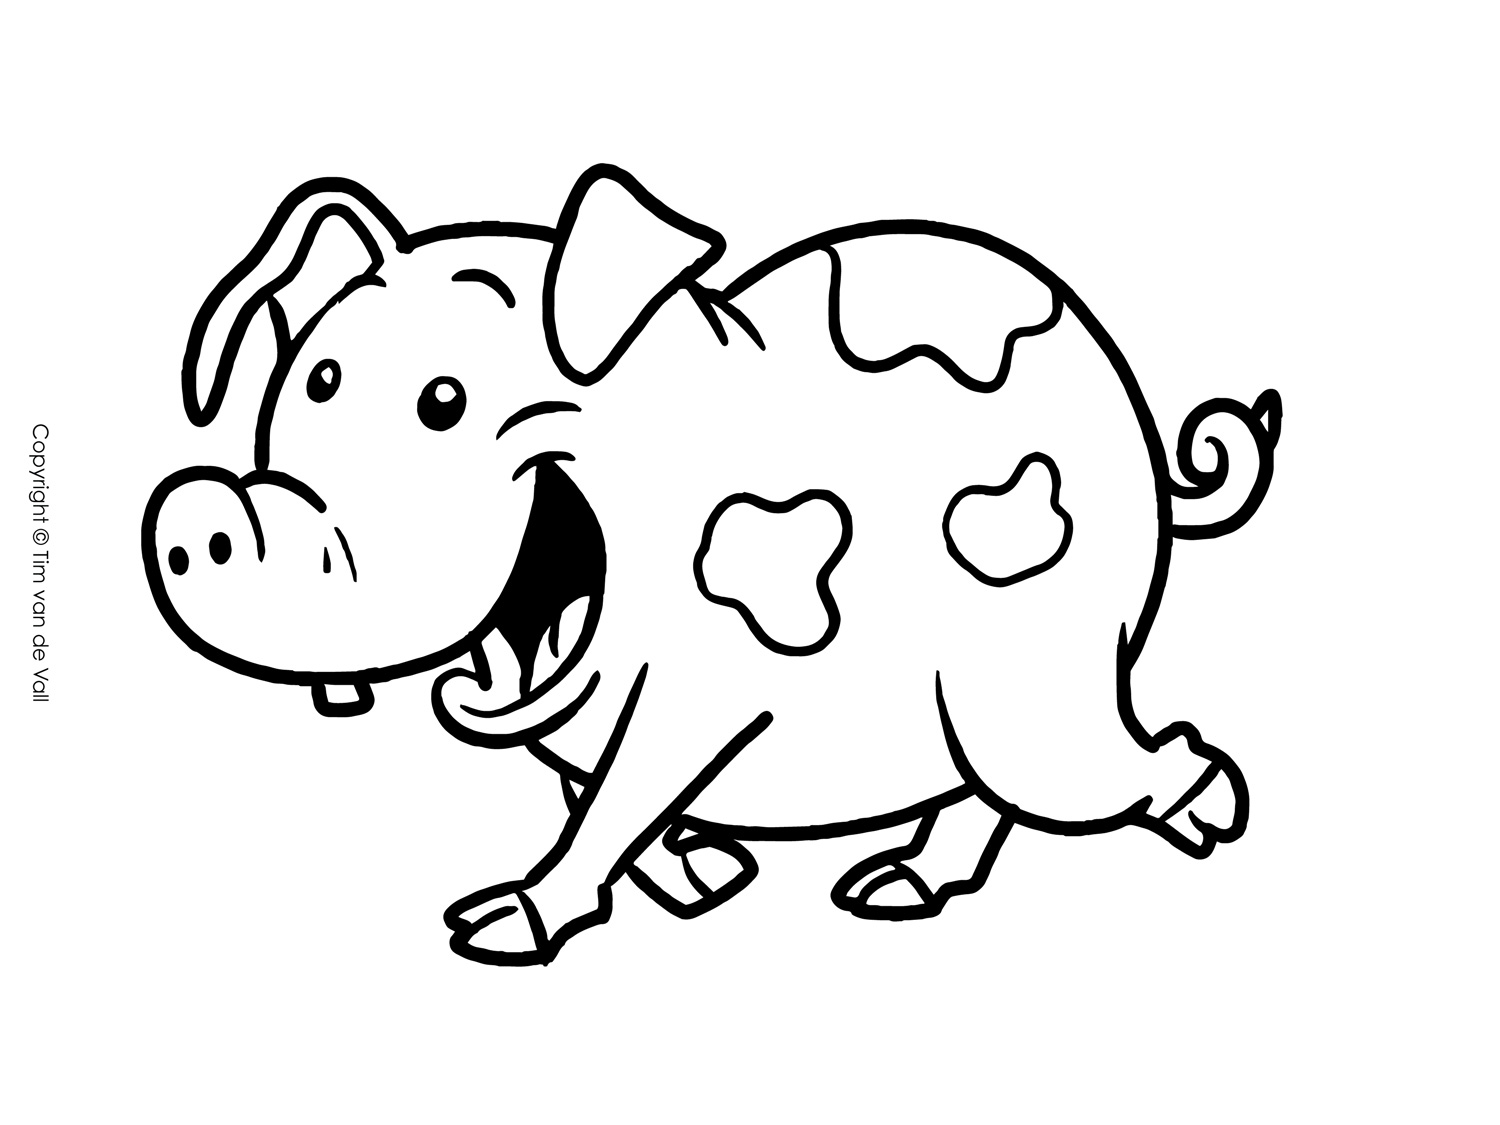 coloring pig pictures free printable pig coloring pages for kids coloring pig pictures